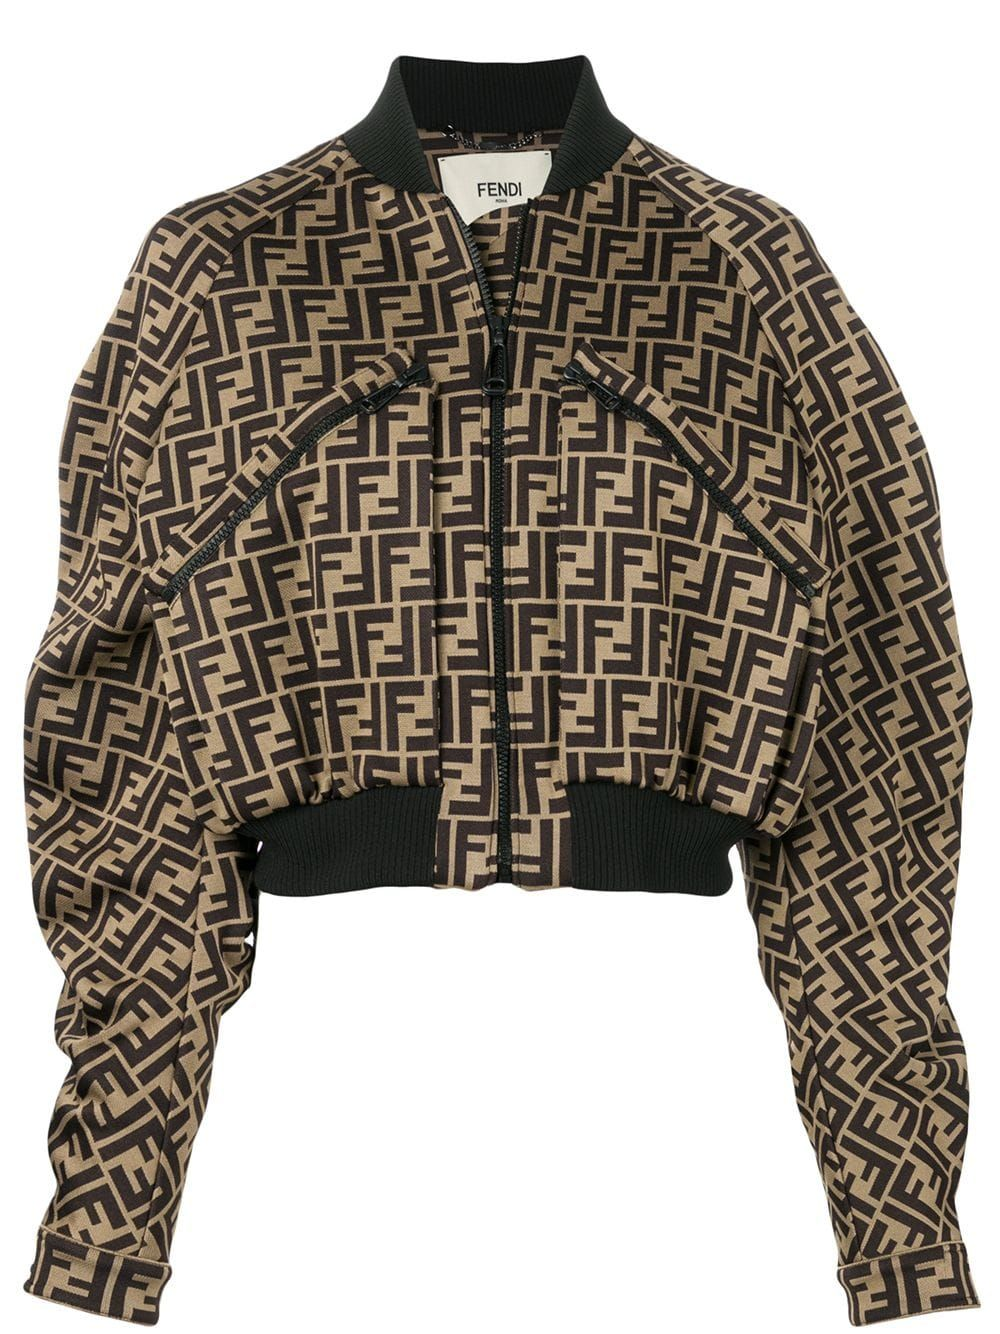 7c05b8c9 Fendi monogram cropped bomber jacket - Brown in 2019 | Products ...